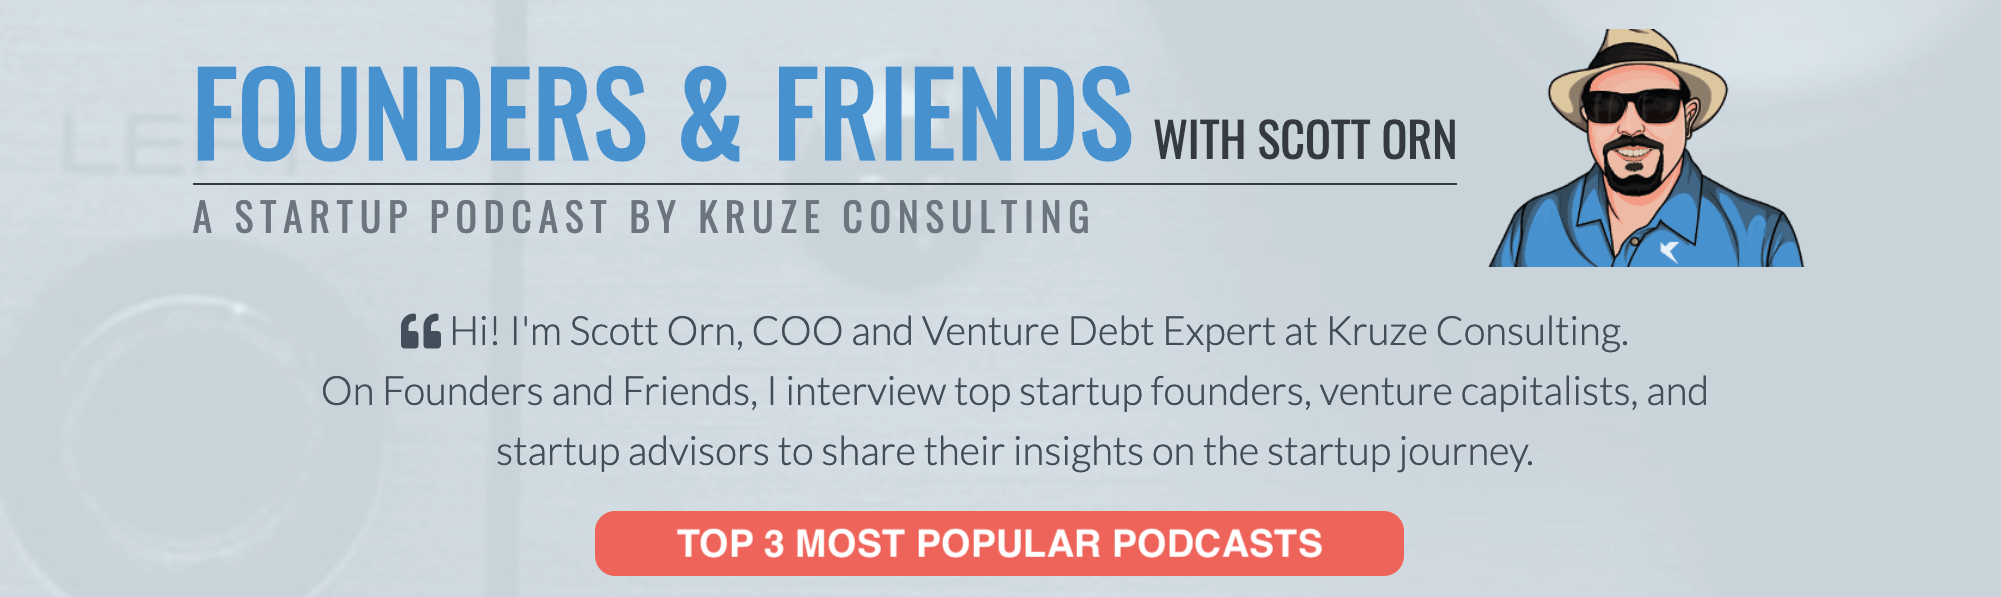 Recent Kruze Consulting Top 3 Most Popular Podcasts